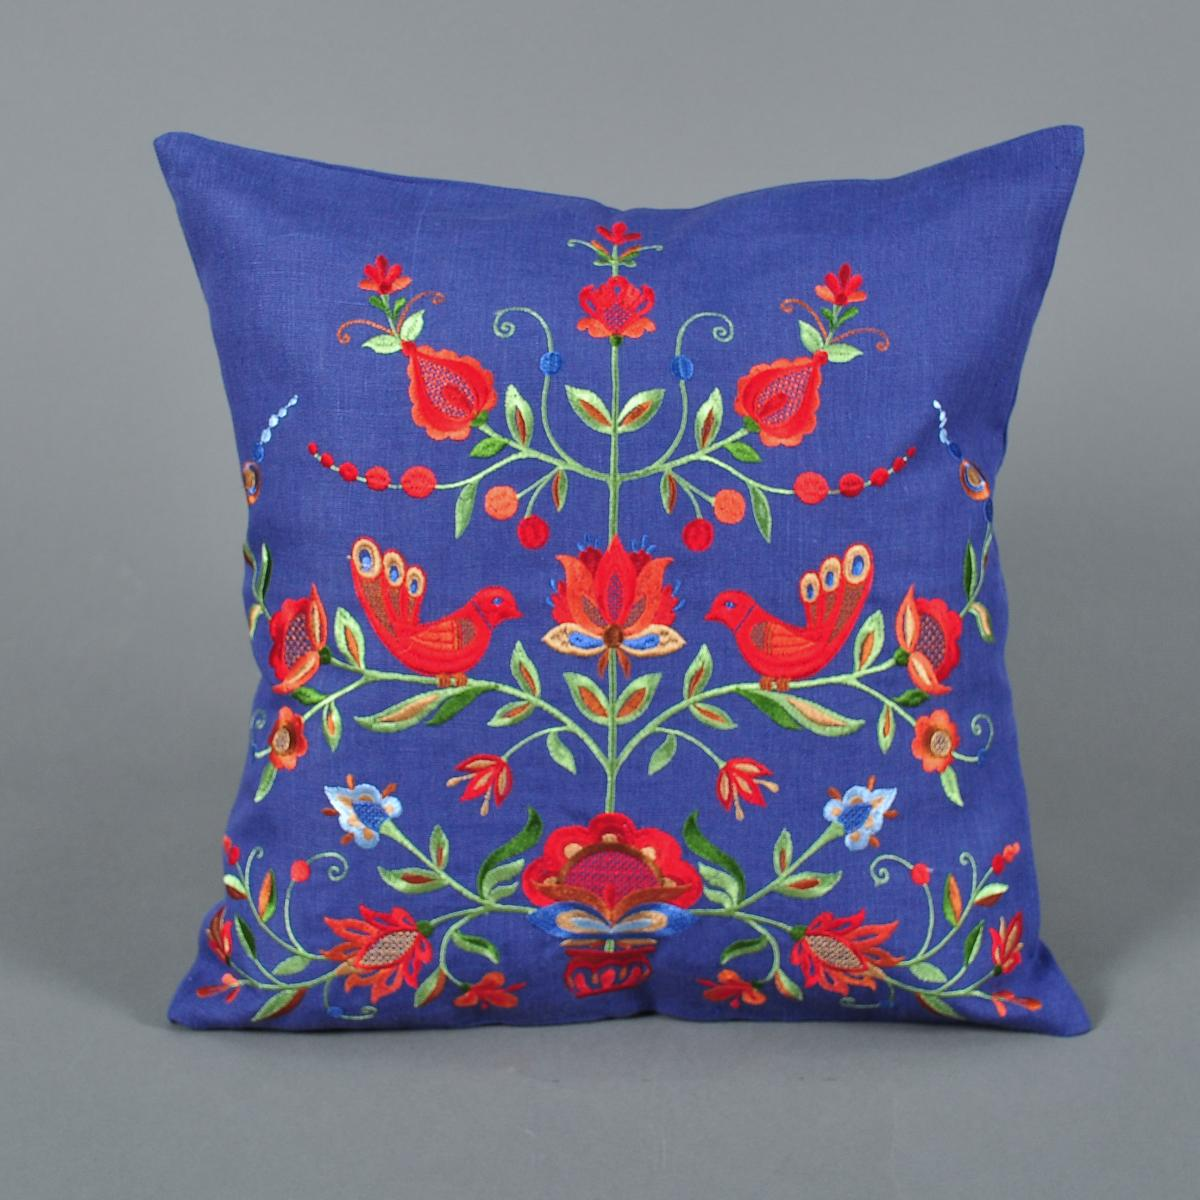 Pillowcase with embroidery